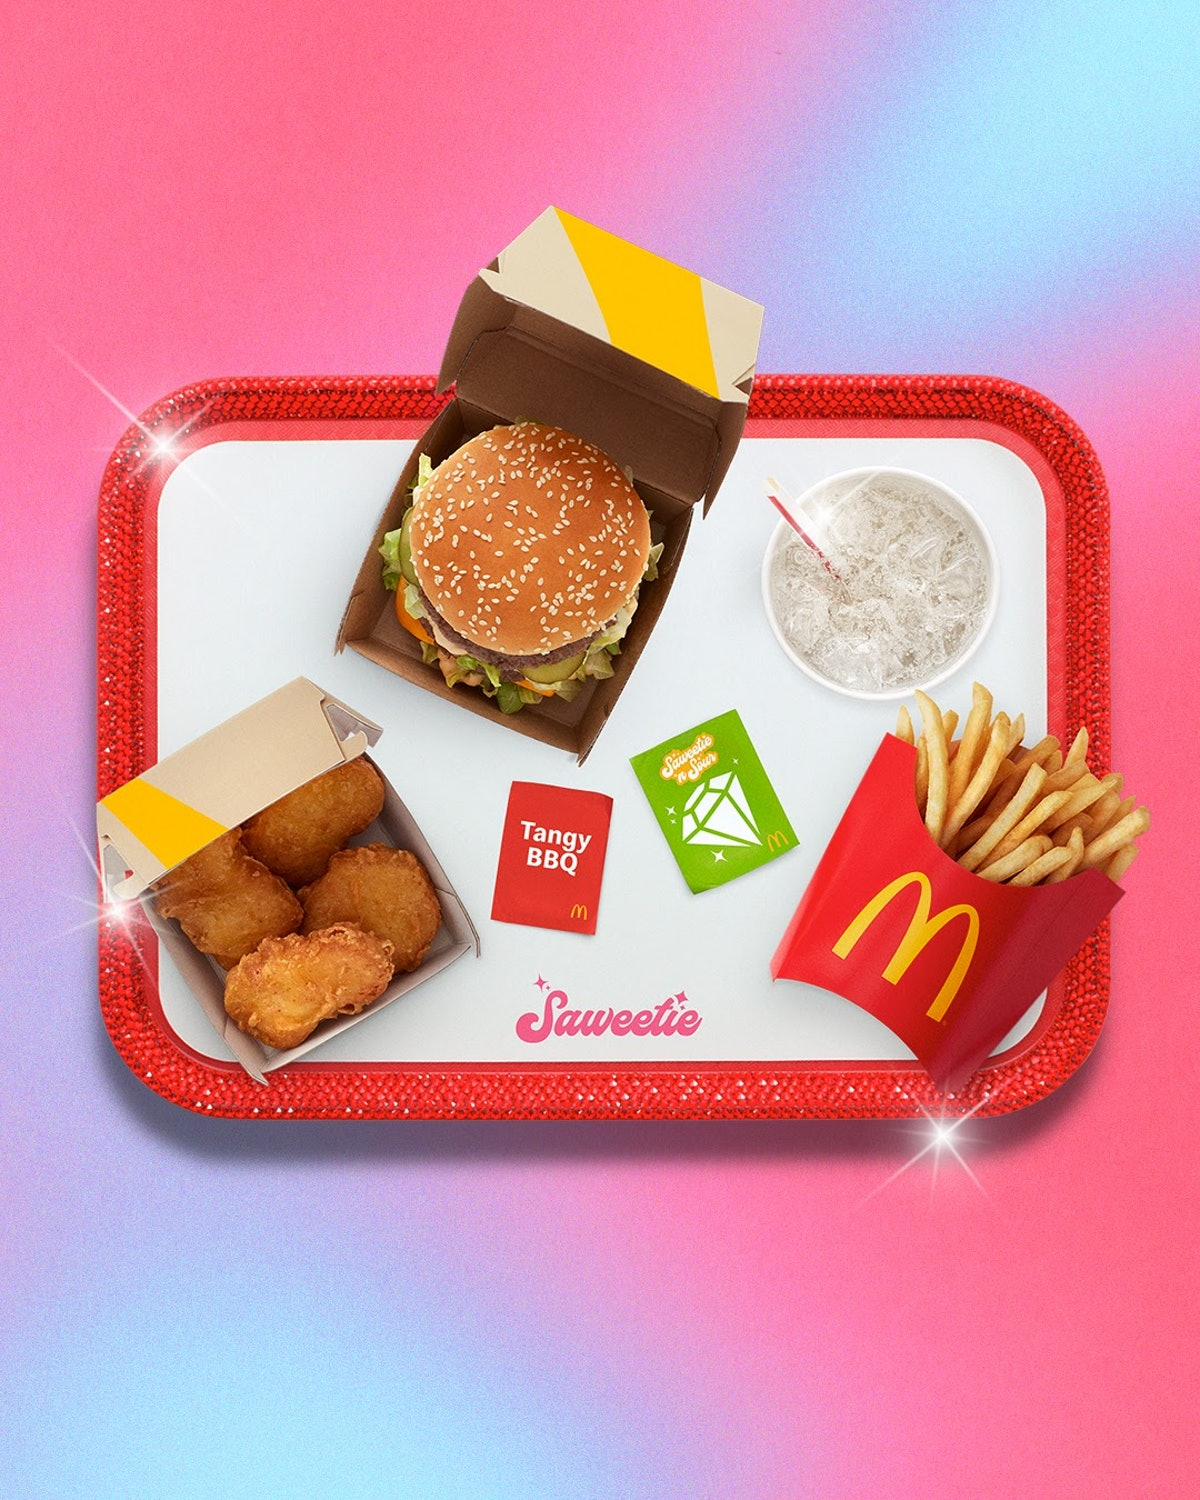 Here's what's in McDonald's Saweetie Meal that's hitting restaurants so soon.